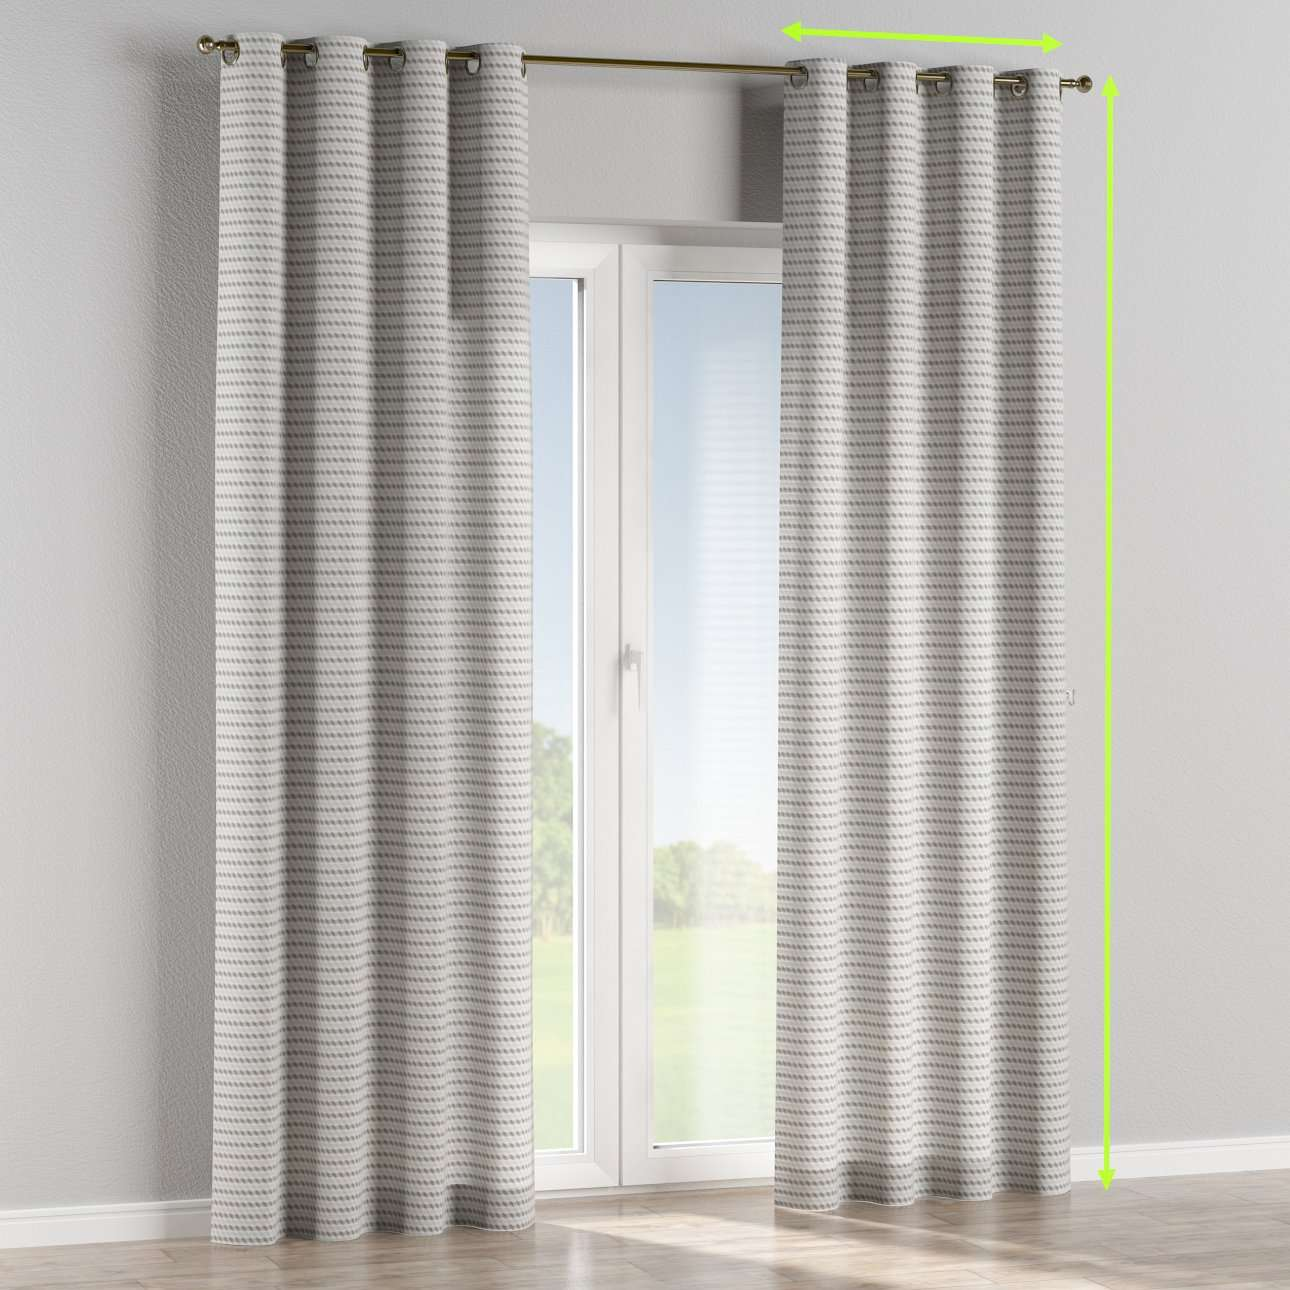 Eyelet curtains in collection Rustica, fabric: 140-33